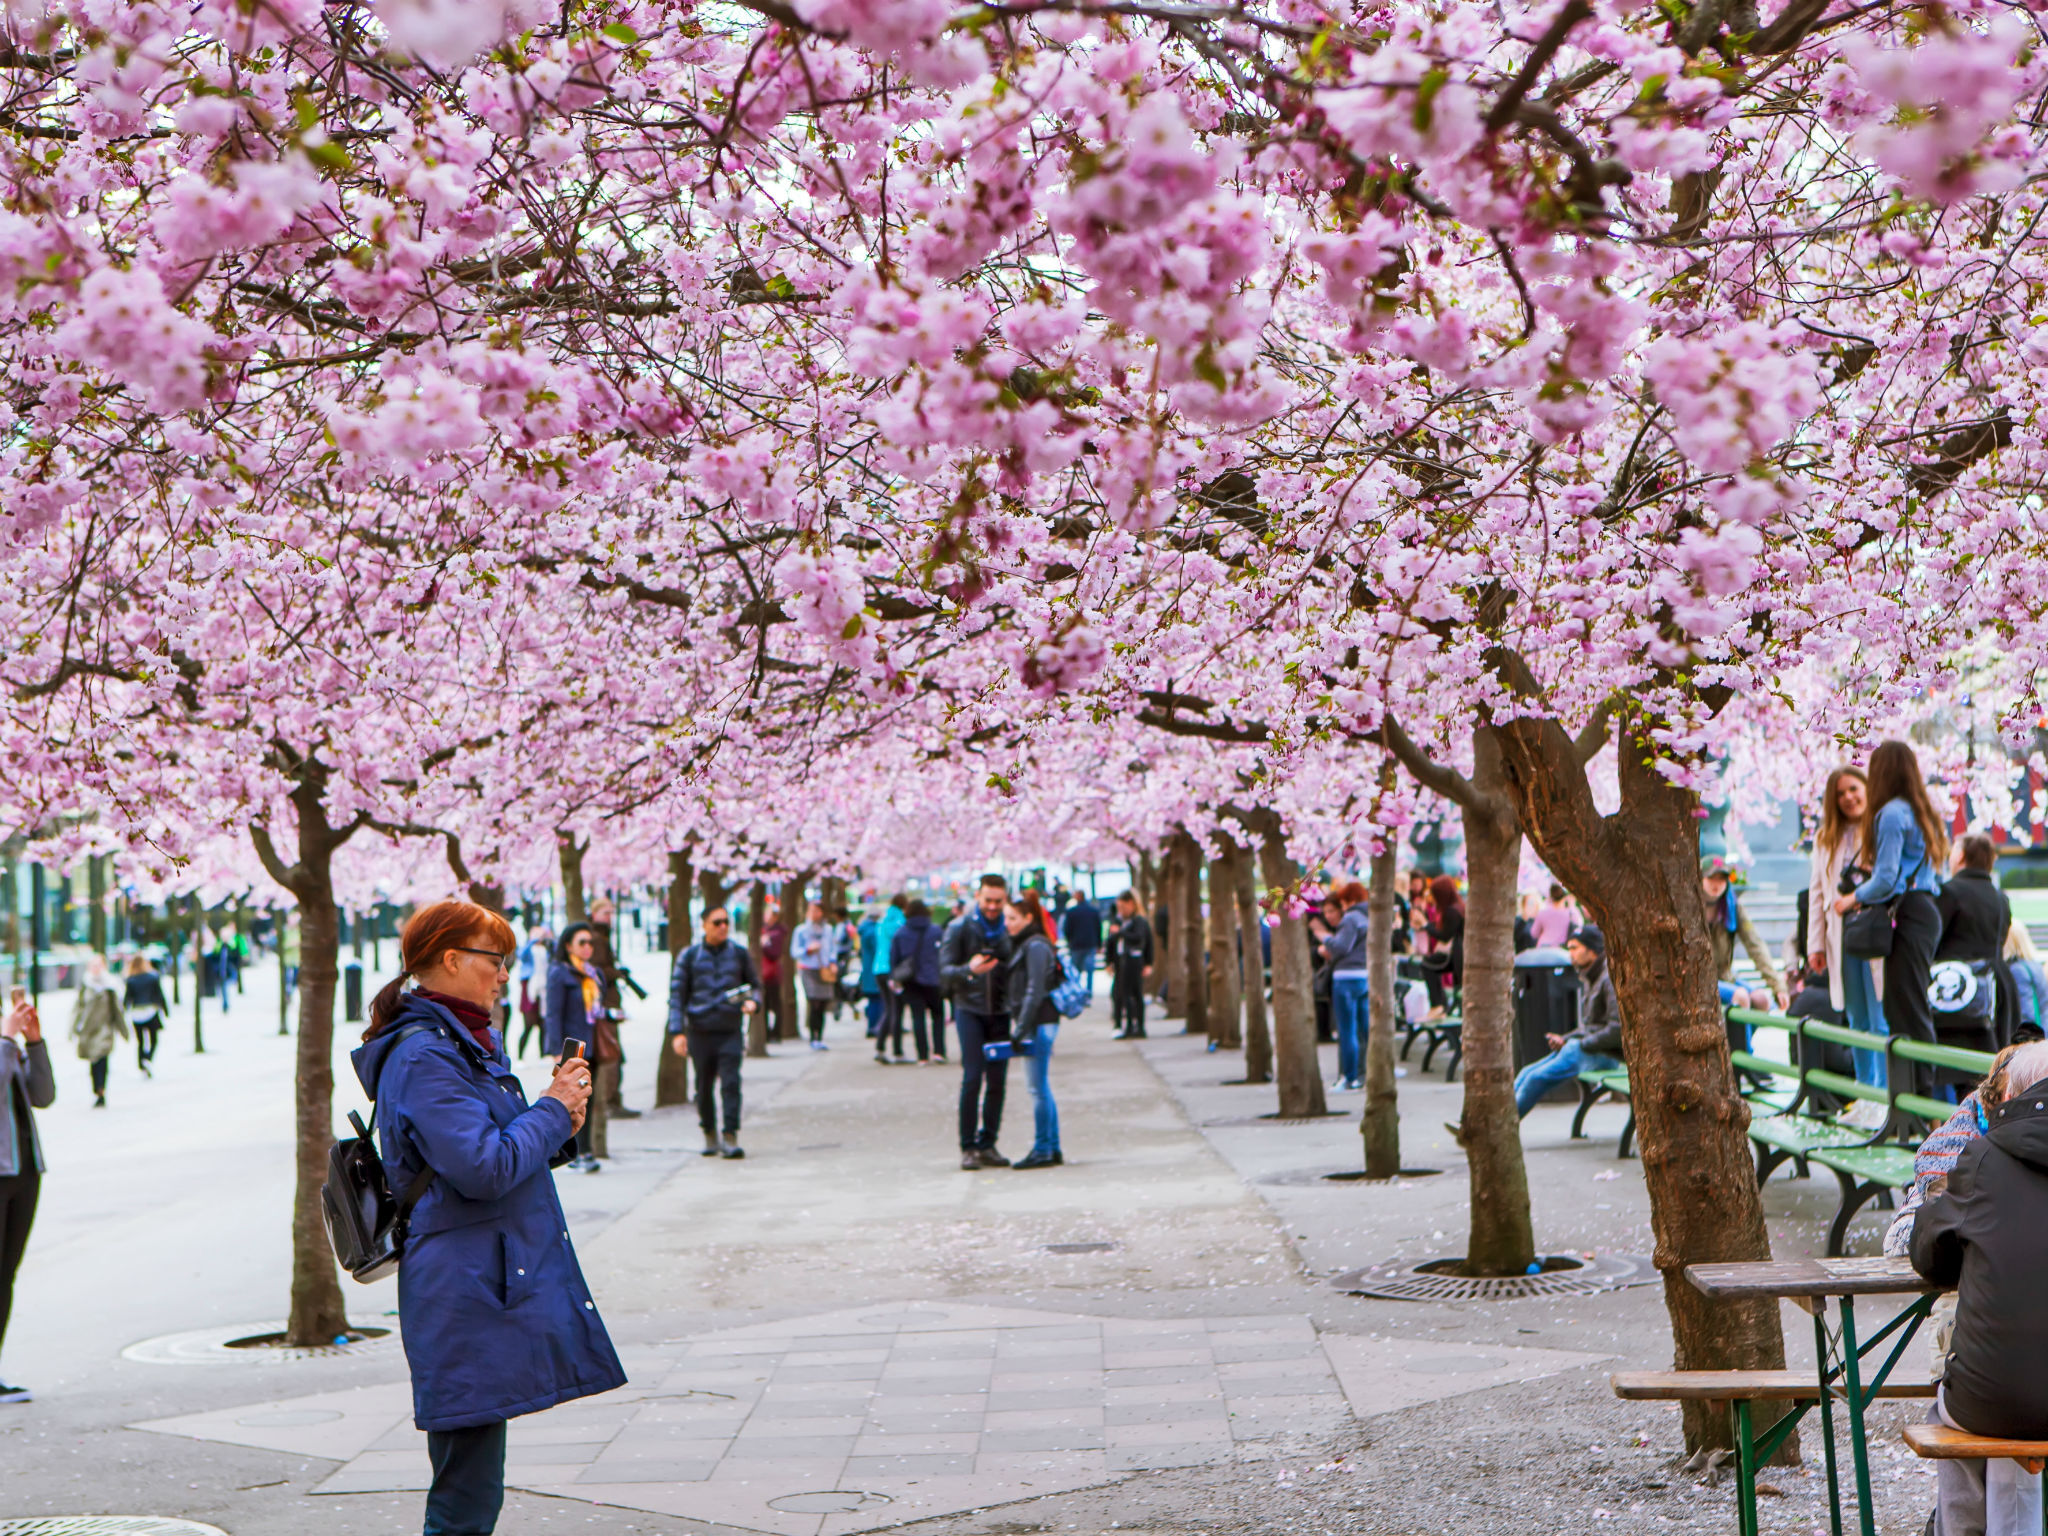 The best places to see cherry blossom around the world